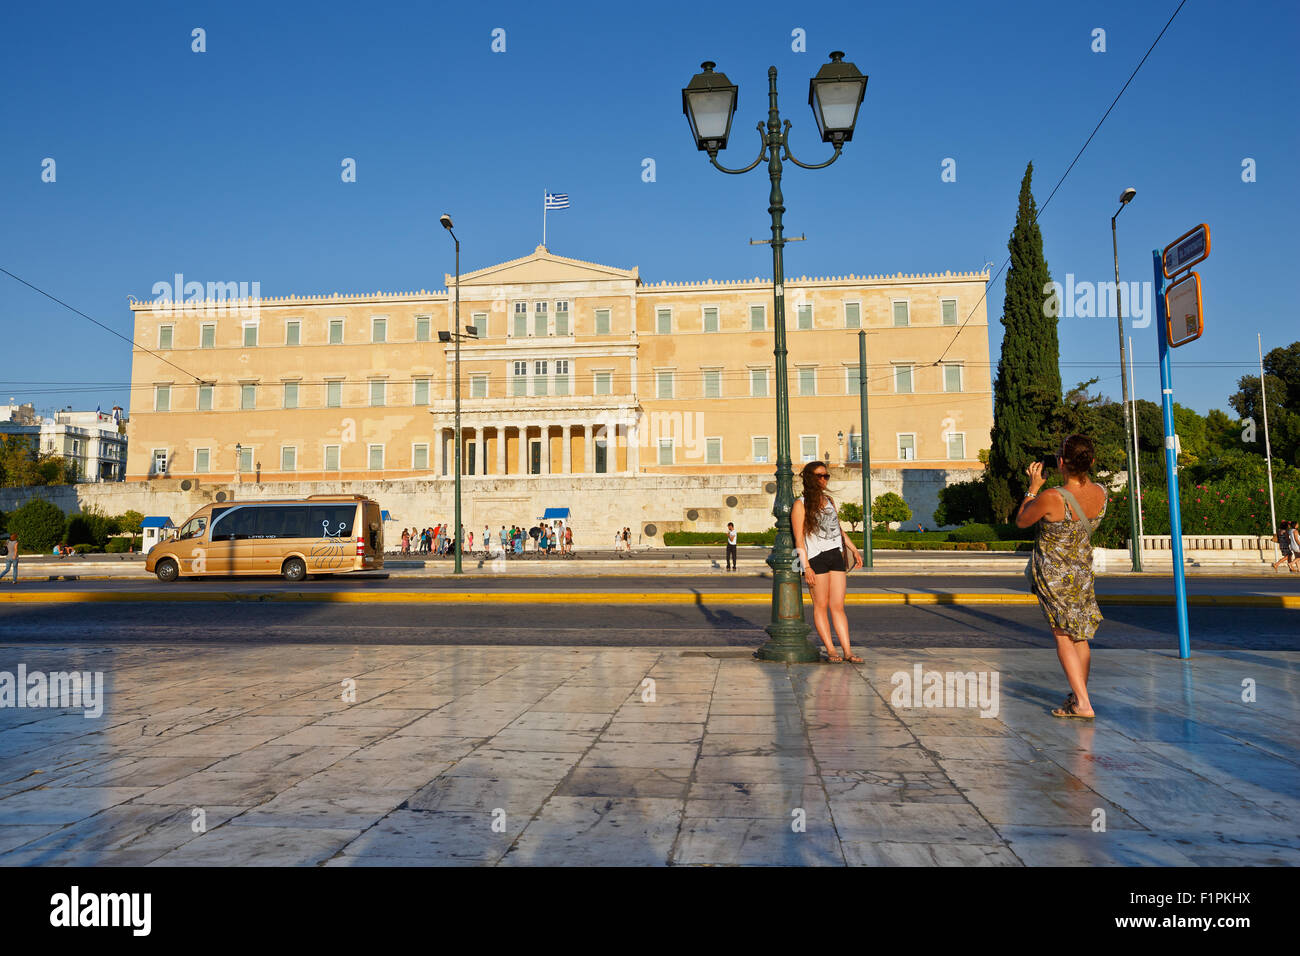 Tourists taking photos in front of the building of Greek parliament - Stock Image